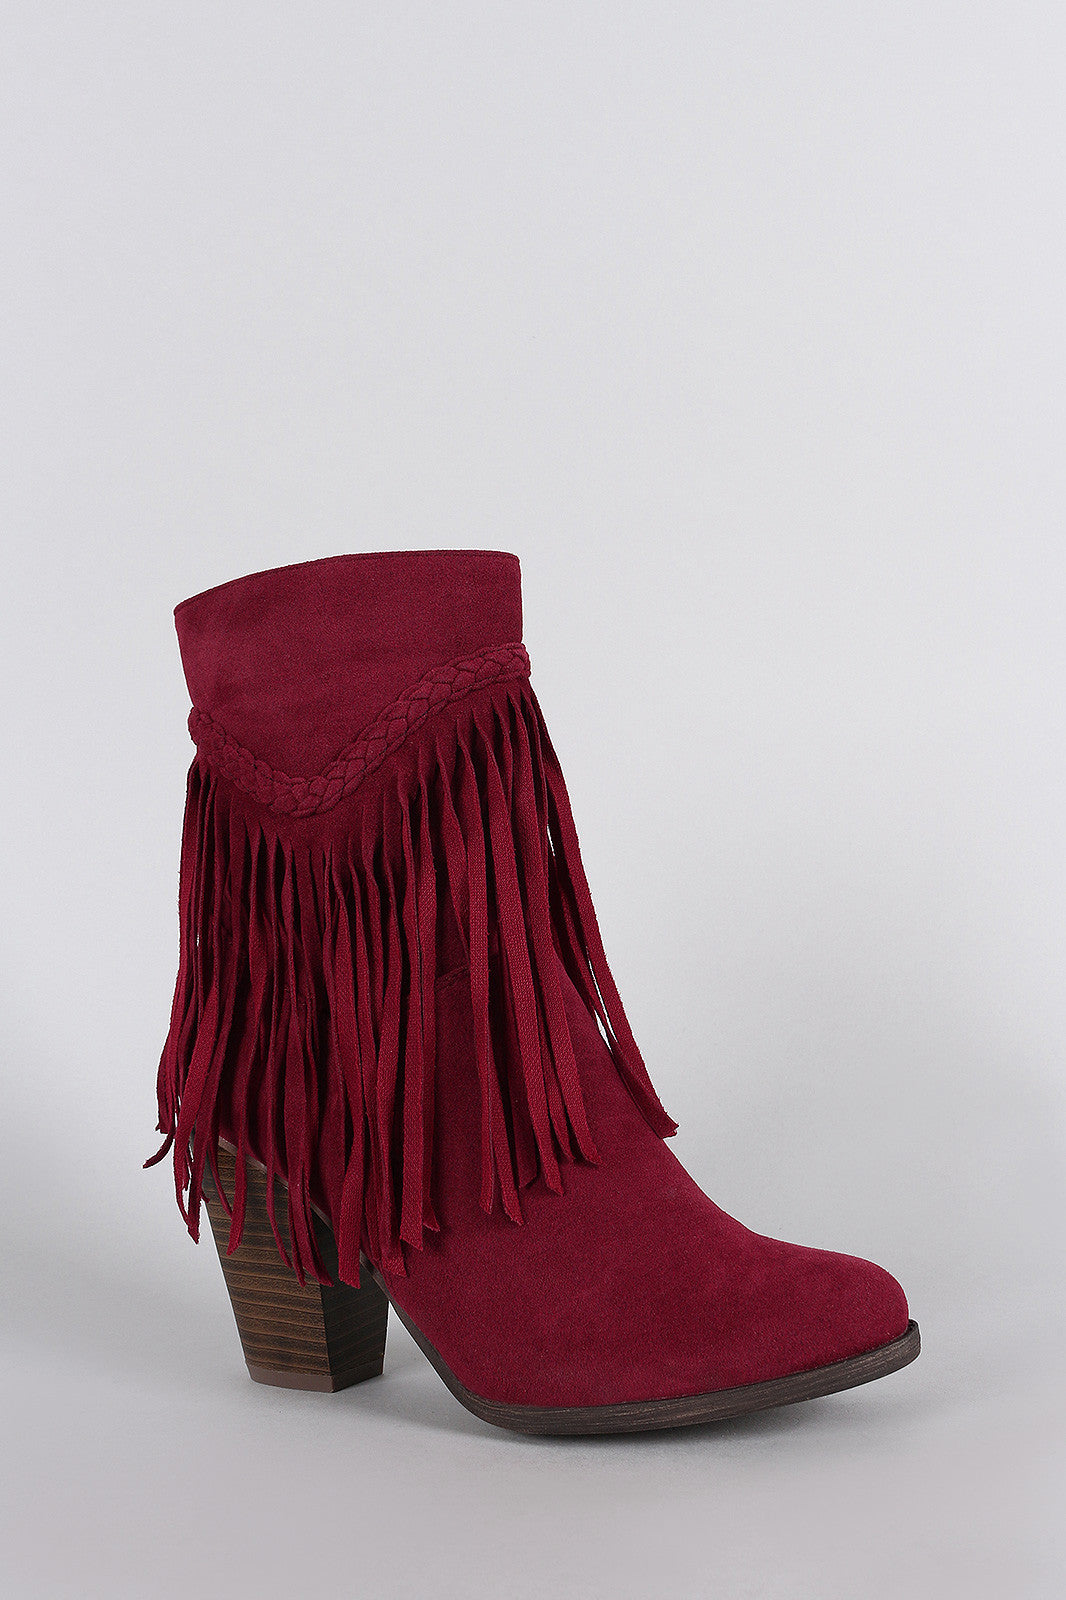 Breckelle Suede Braided Fringe Heeled Ankle Boots - Thick 'N' Curvy Shop - 2